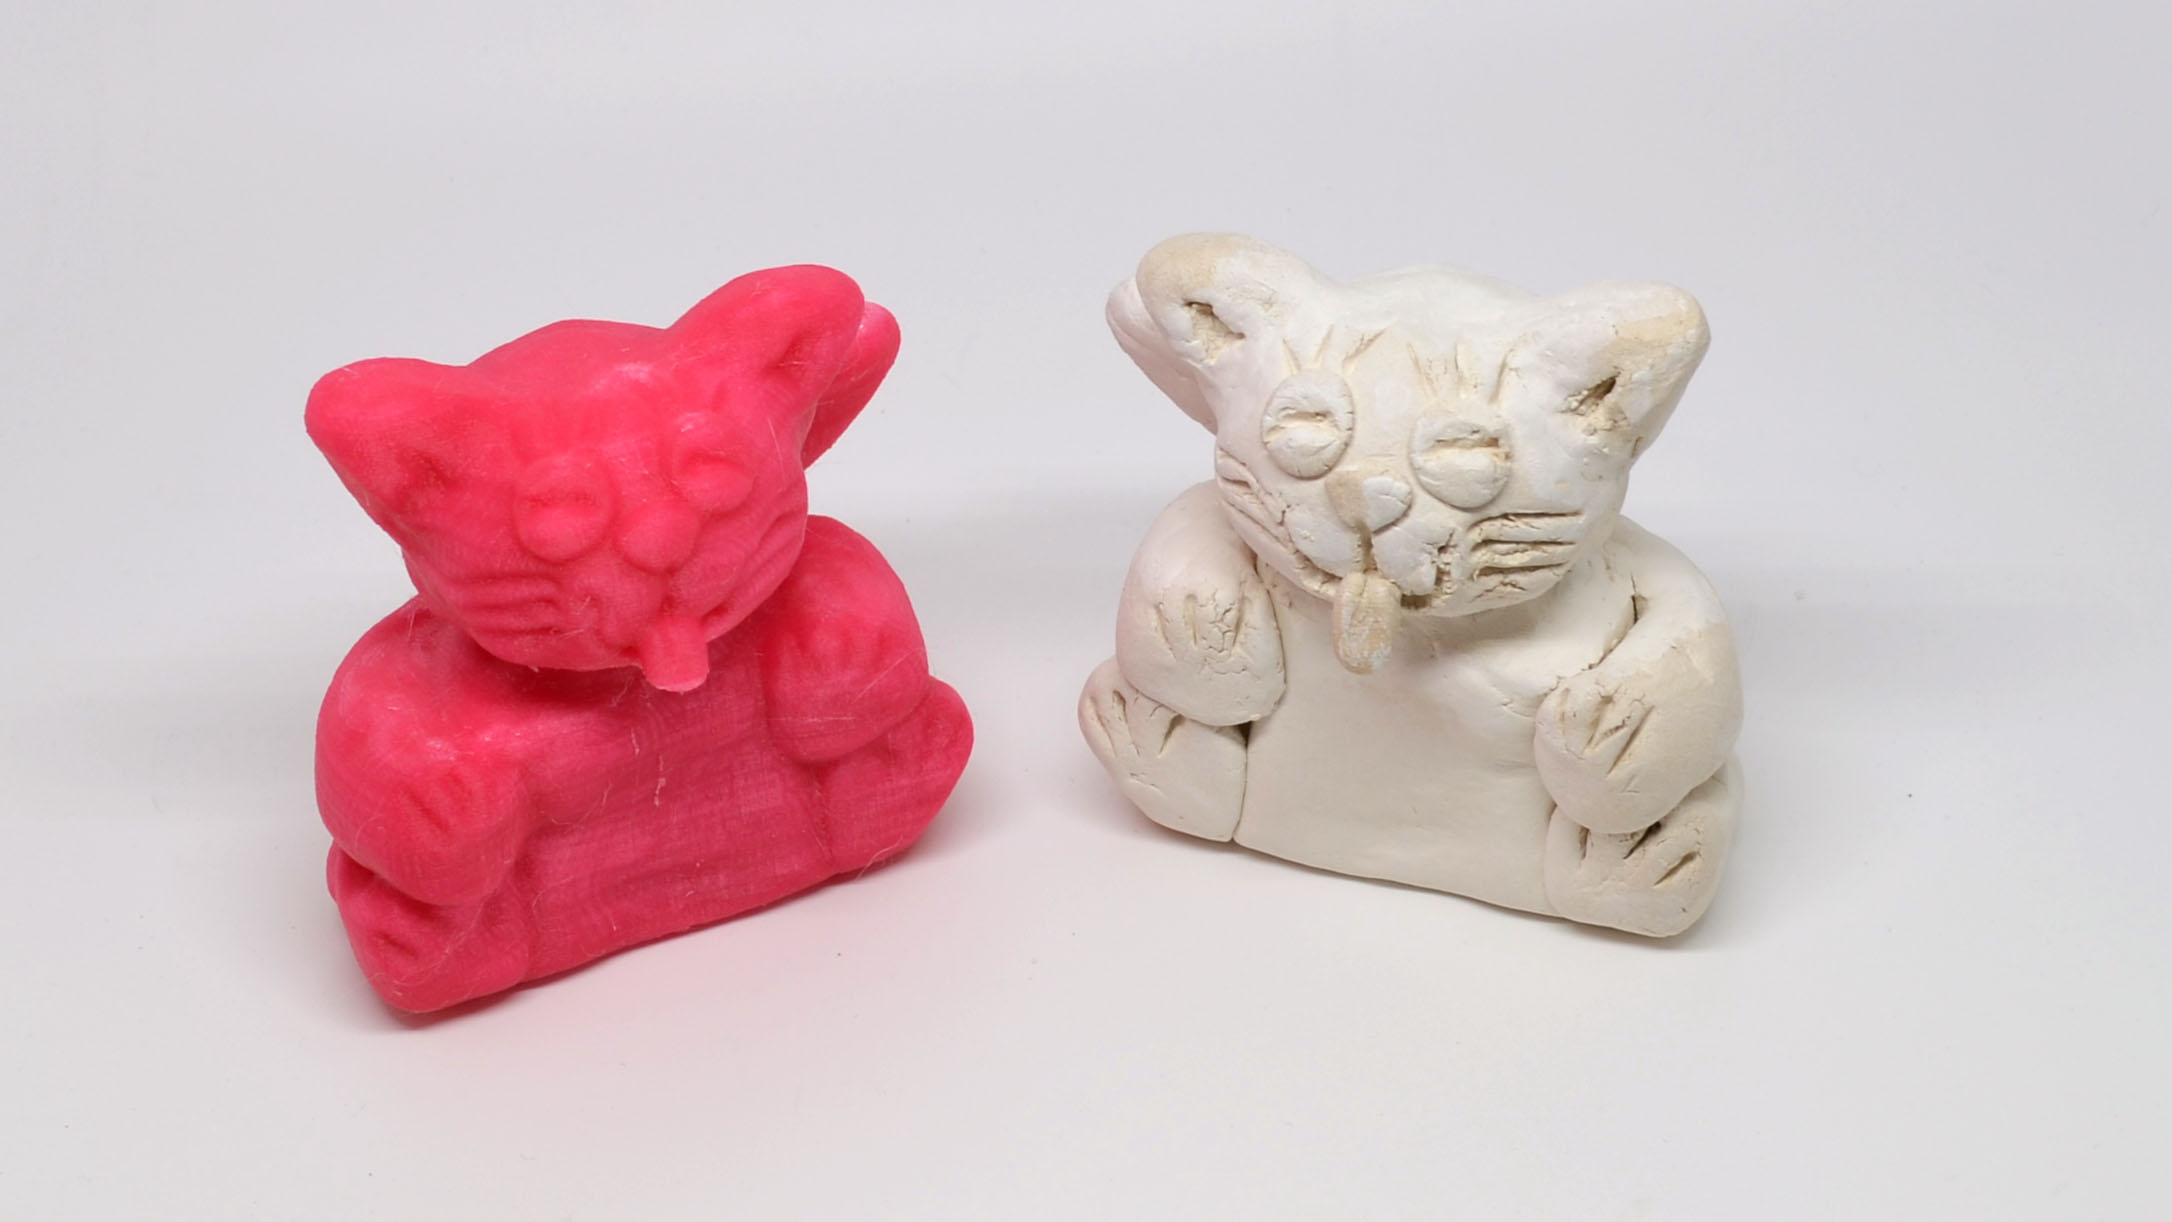 The final model (left) printed in PLA on the MOD-t. The Matter and Form 3D Scanner produced the closest reproduction of the original clay cat model (right) out of any of the solutions in this roundup.